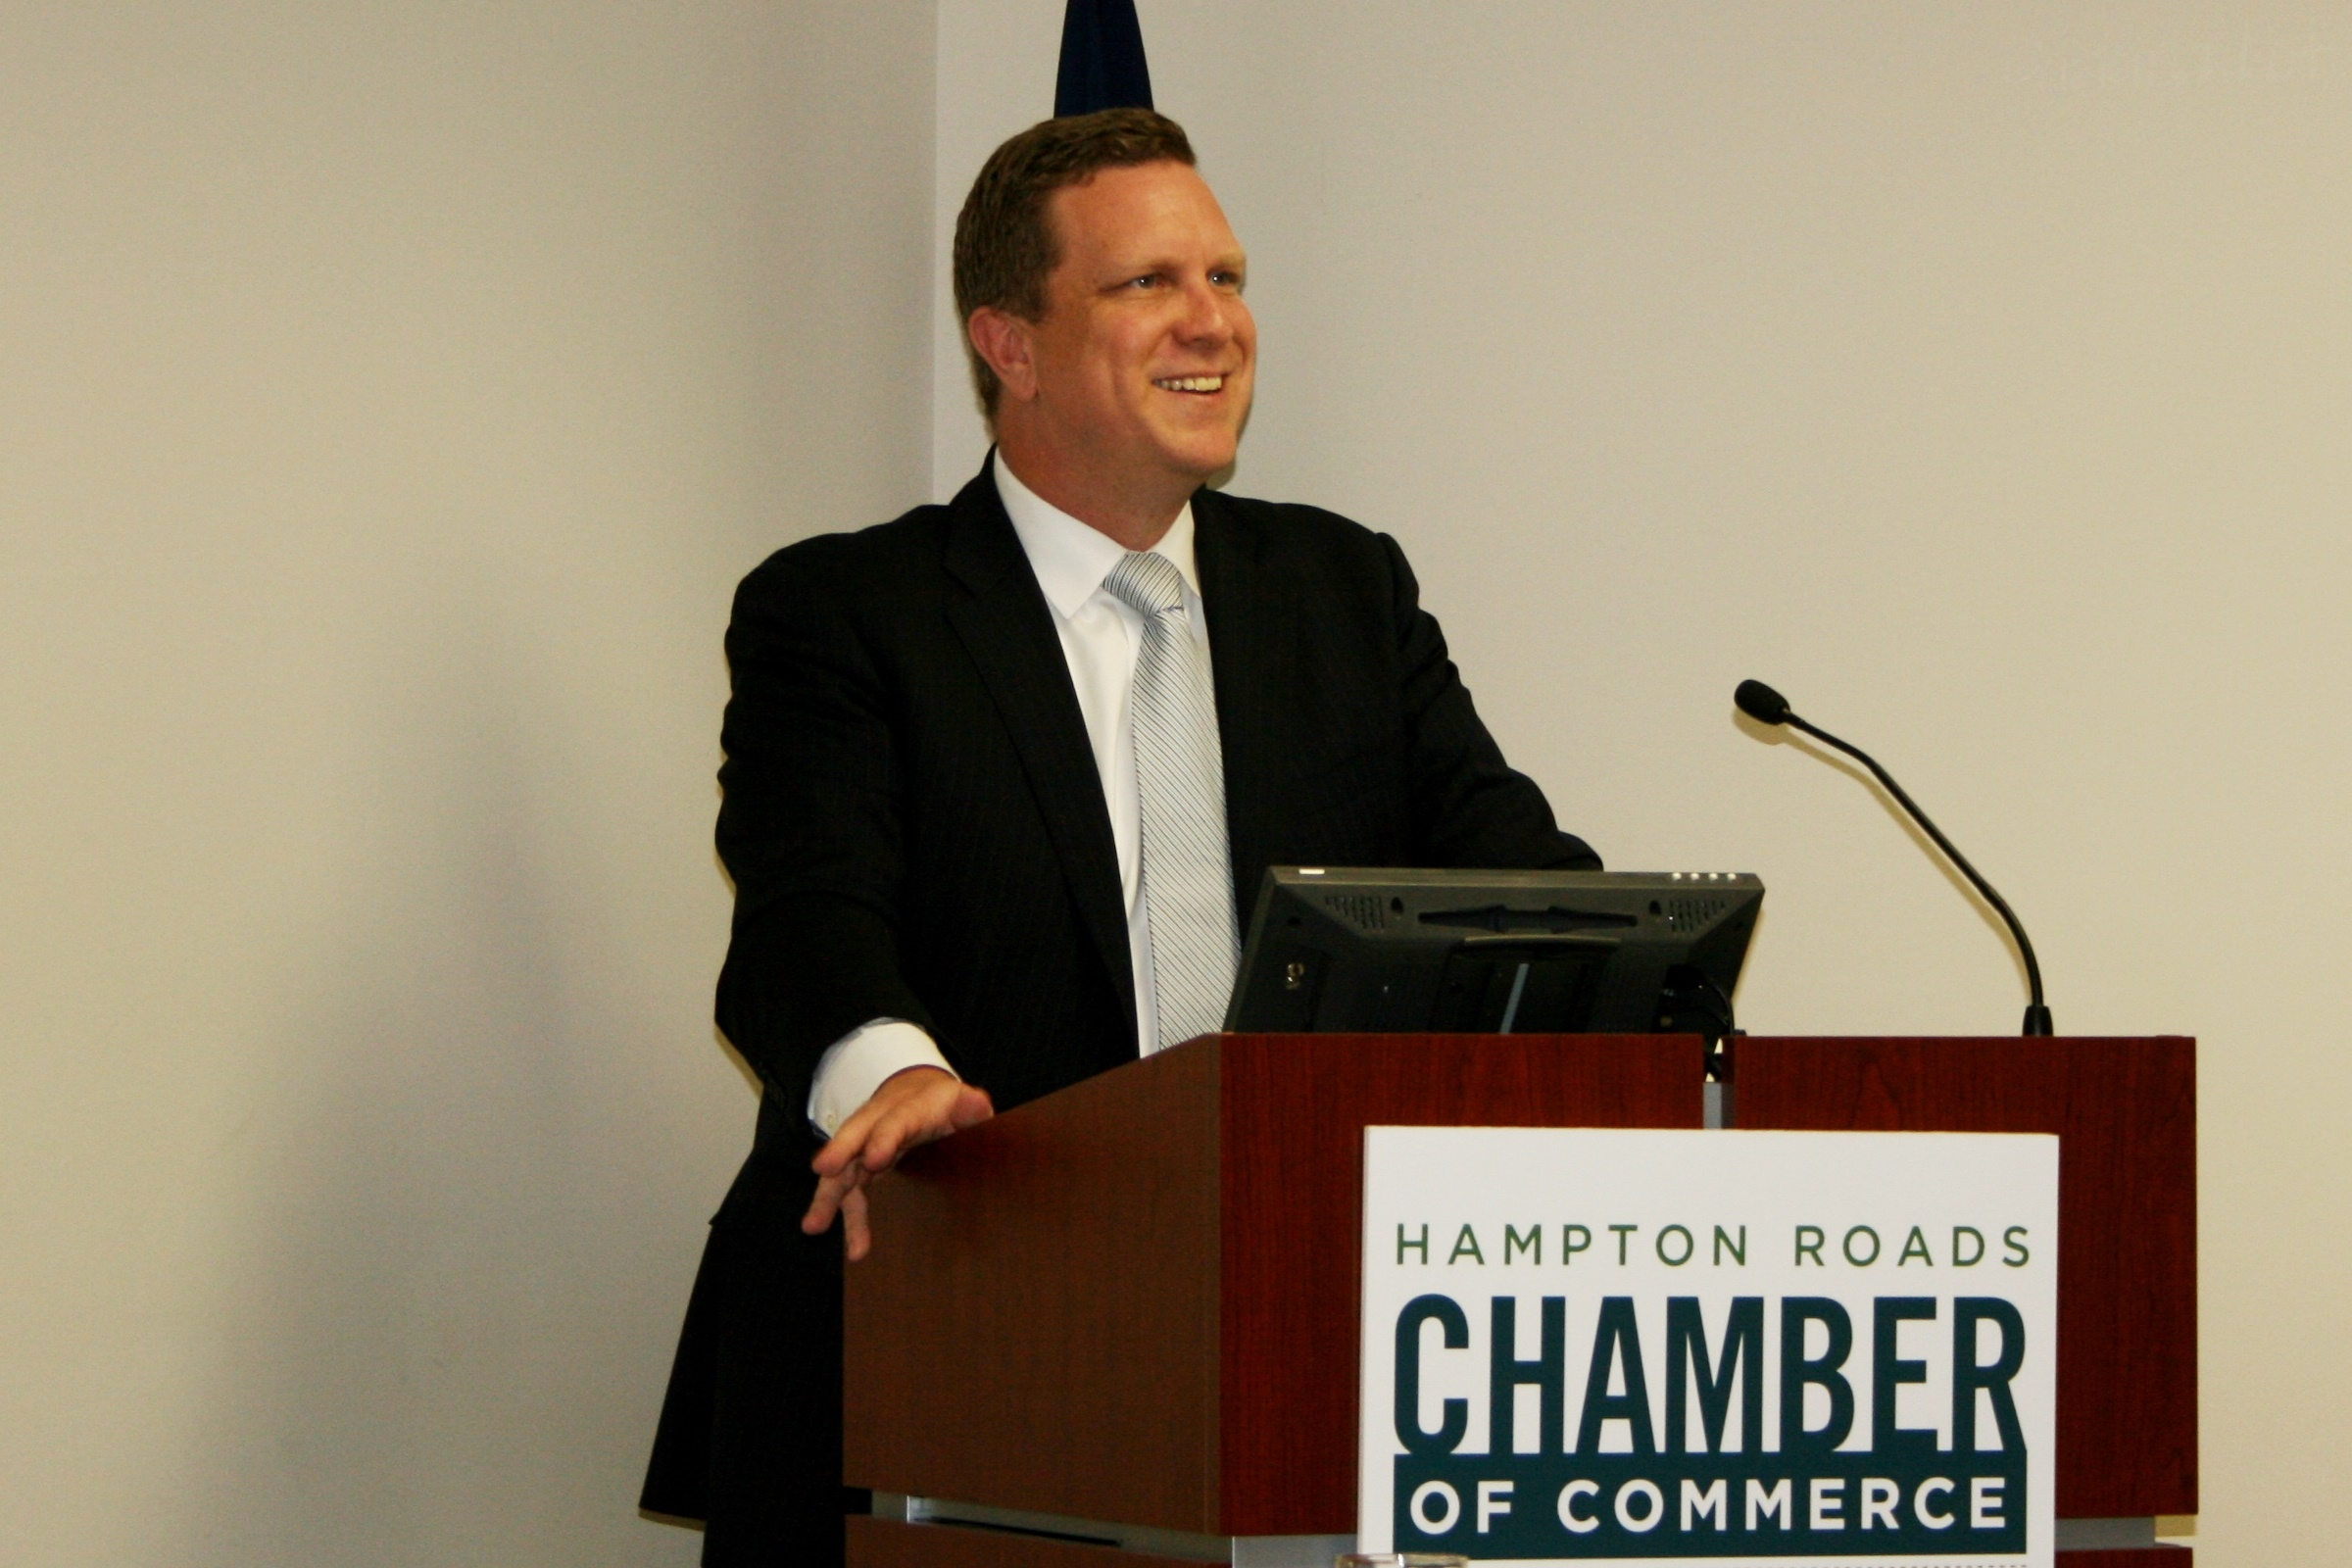 Dr. David Danielson, Assistant Secretary for Energy Efficiency and Renewable Energy from the U.S. Department of Energy Briefed Members of the Hampton Roads Chamber